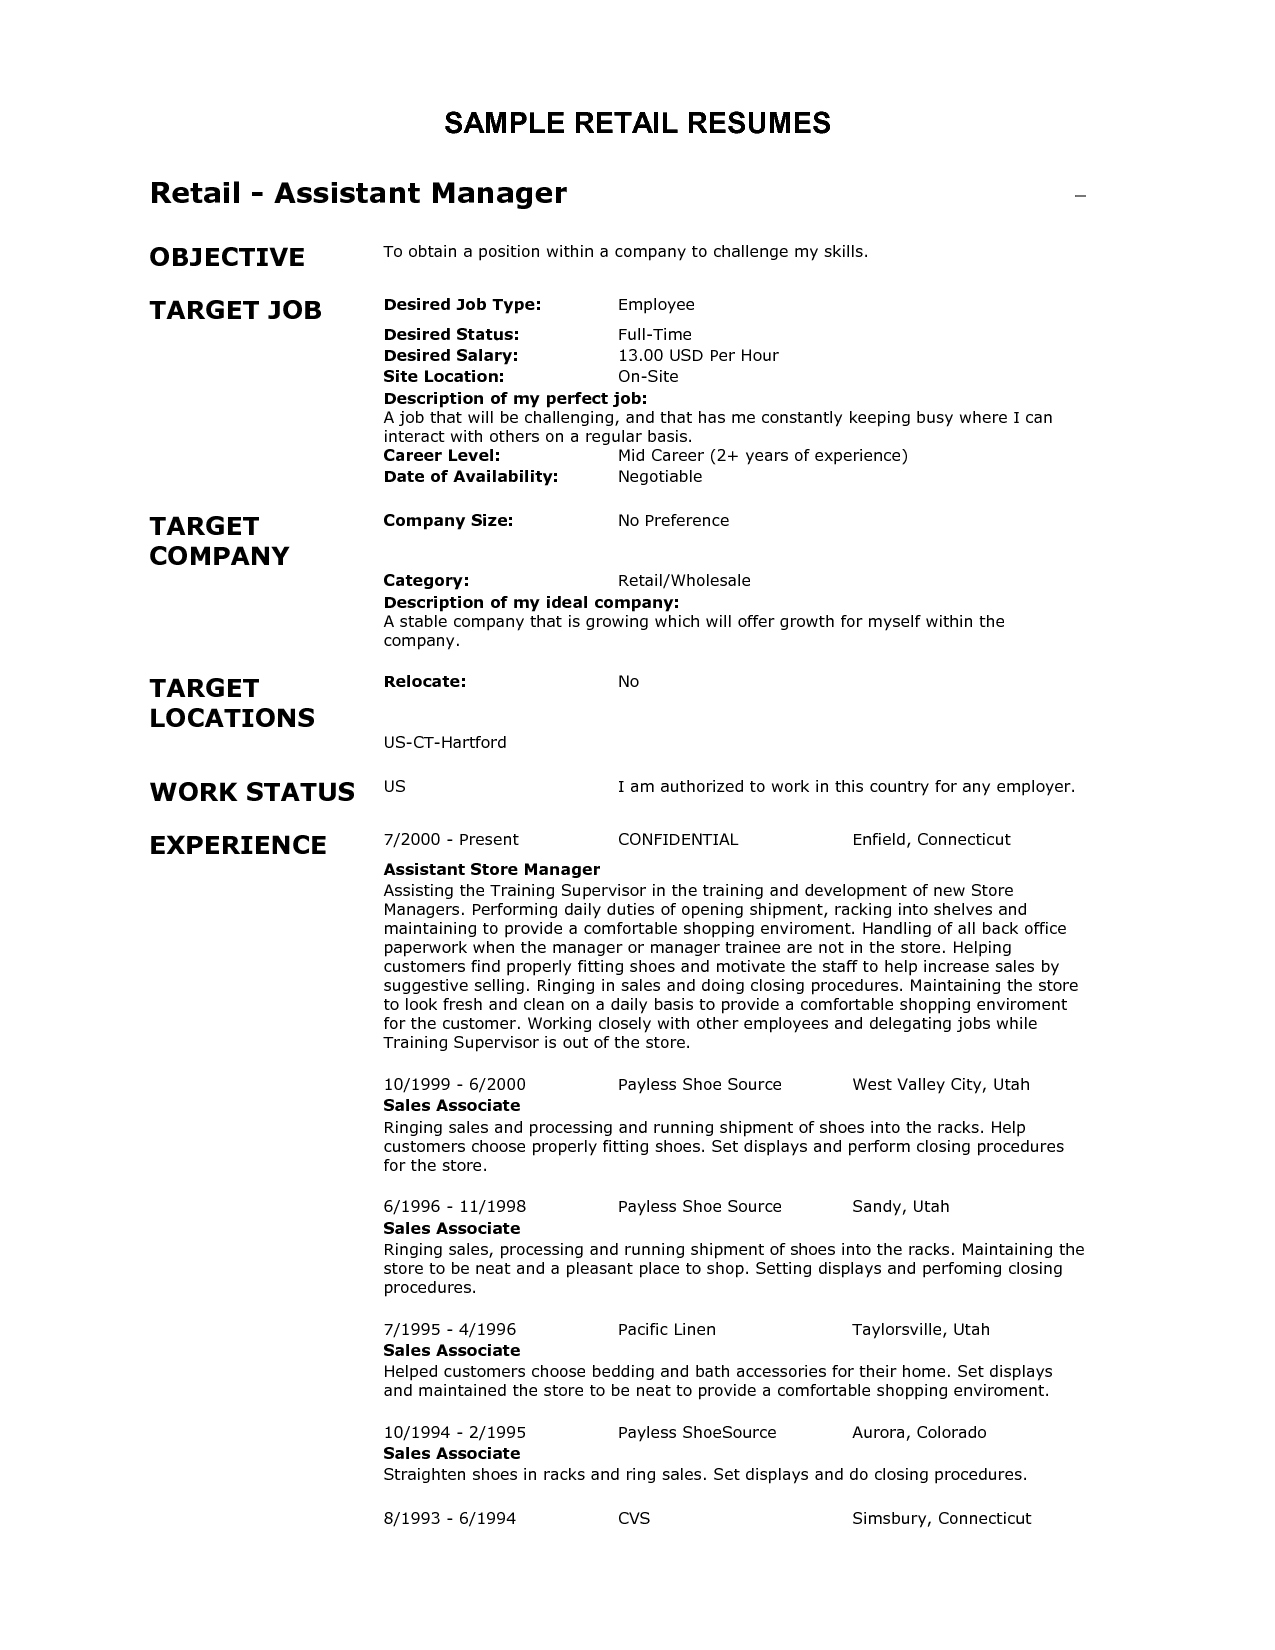 How To Write A Resume Objective For A Teaching Position 10 Best Resume Objective Samples Samplebusinessresume